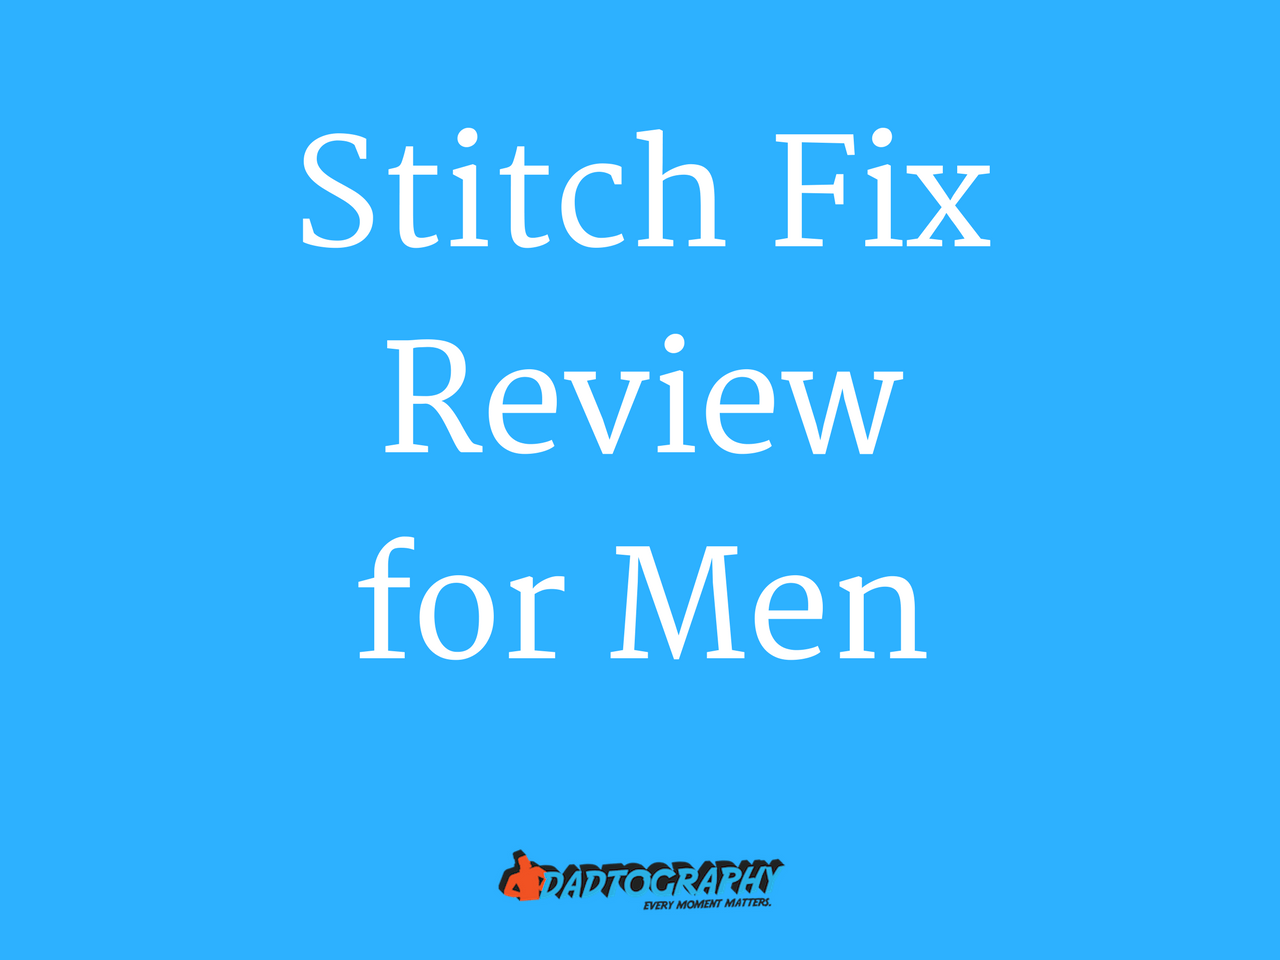 Stitch Fix Review for Men